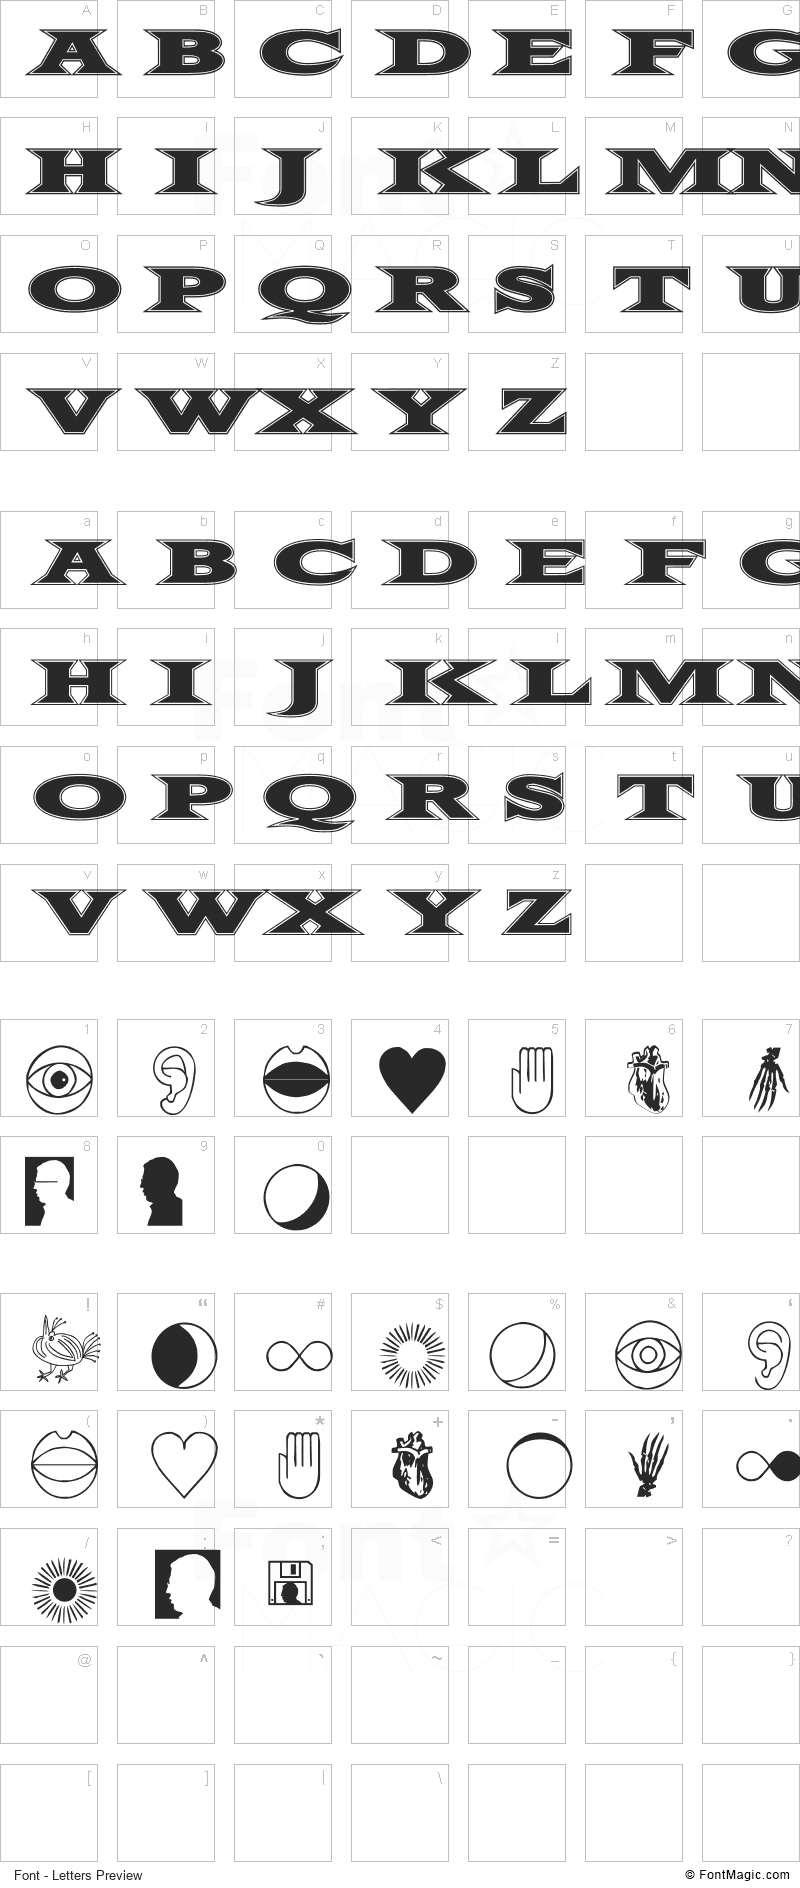 Fifty Two Letters Font - All Latters Preview Chart